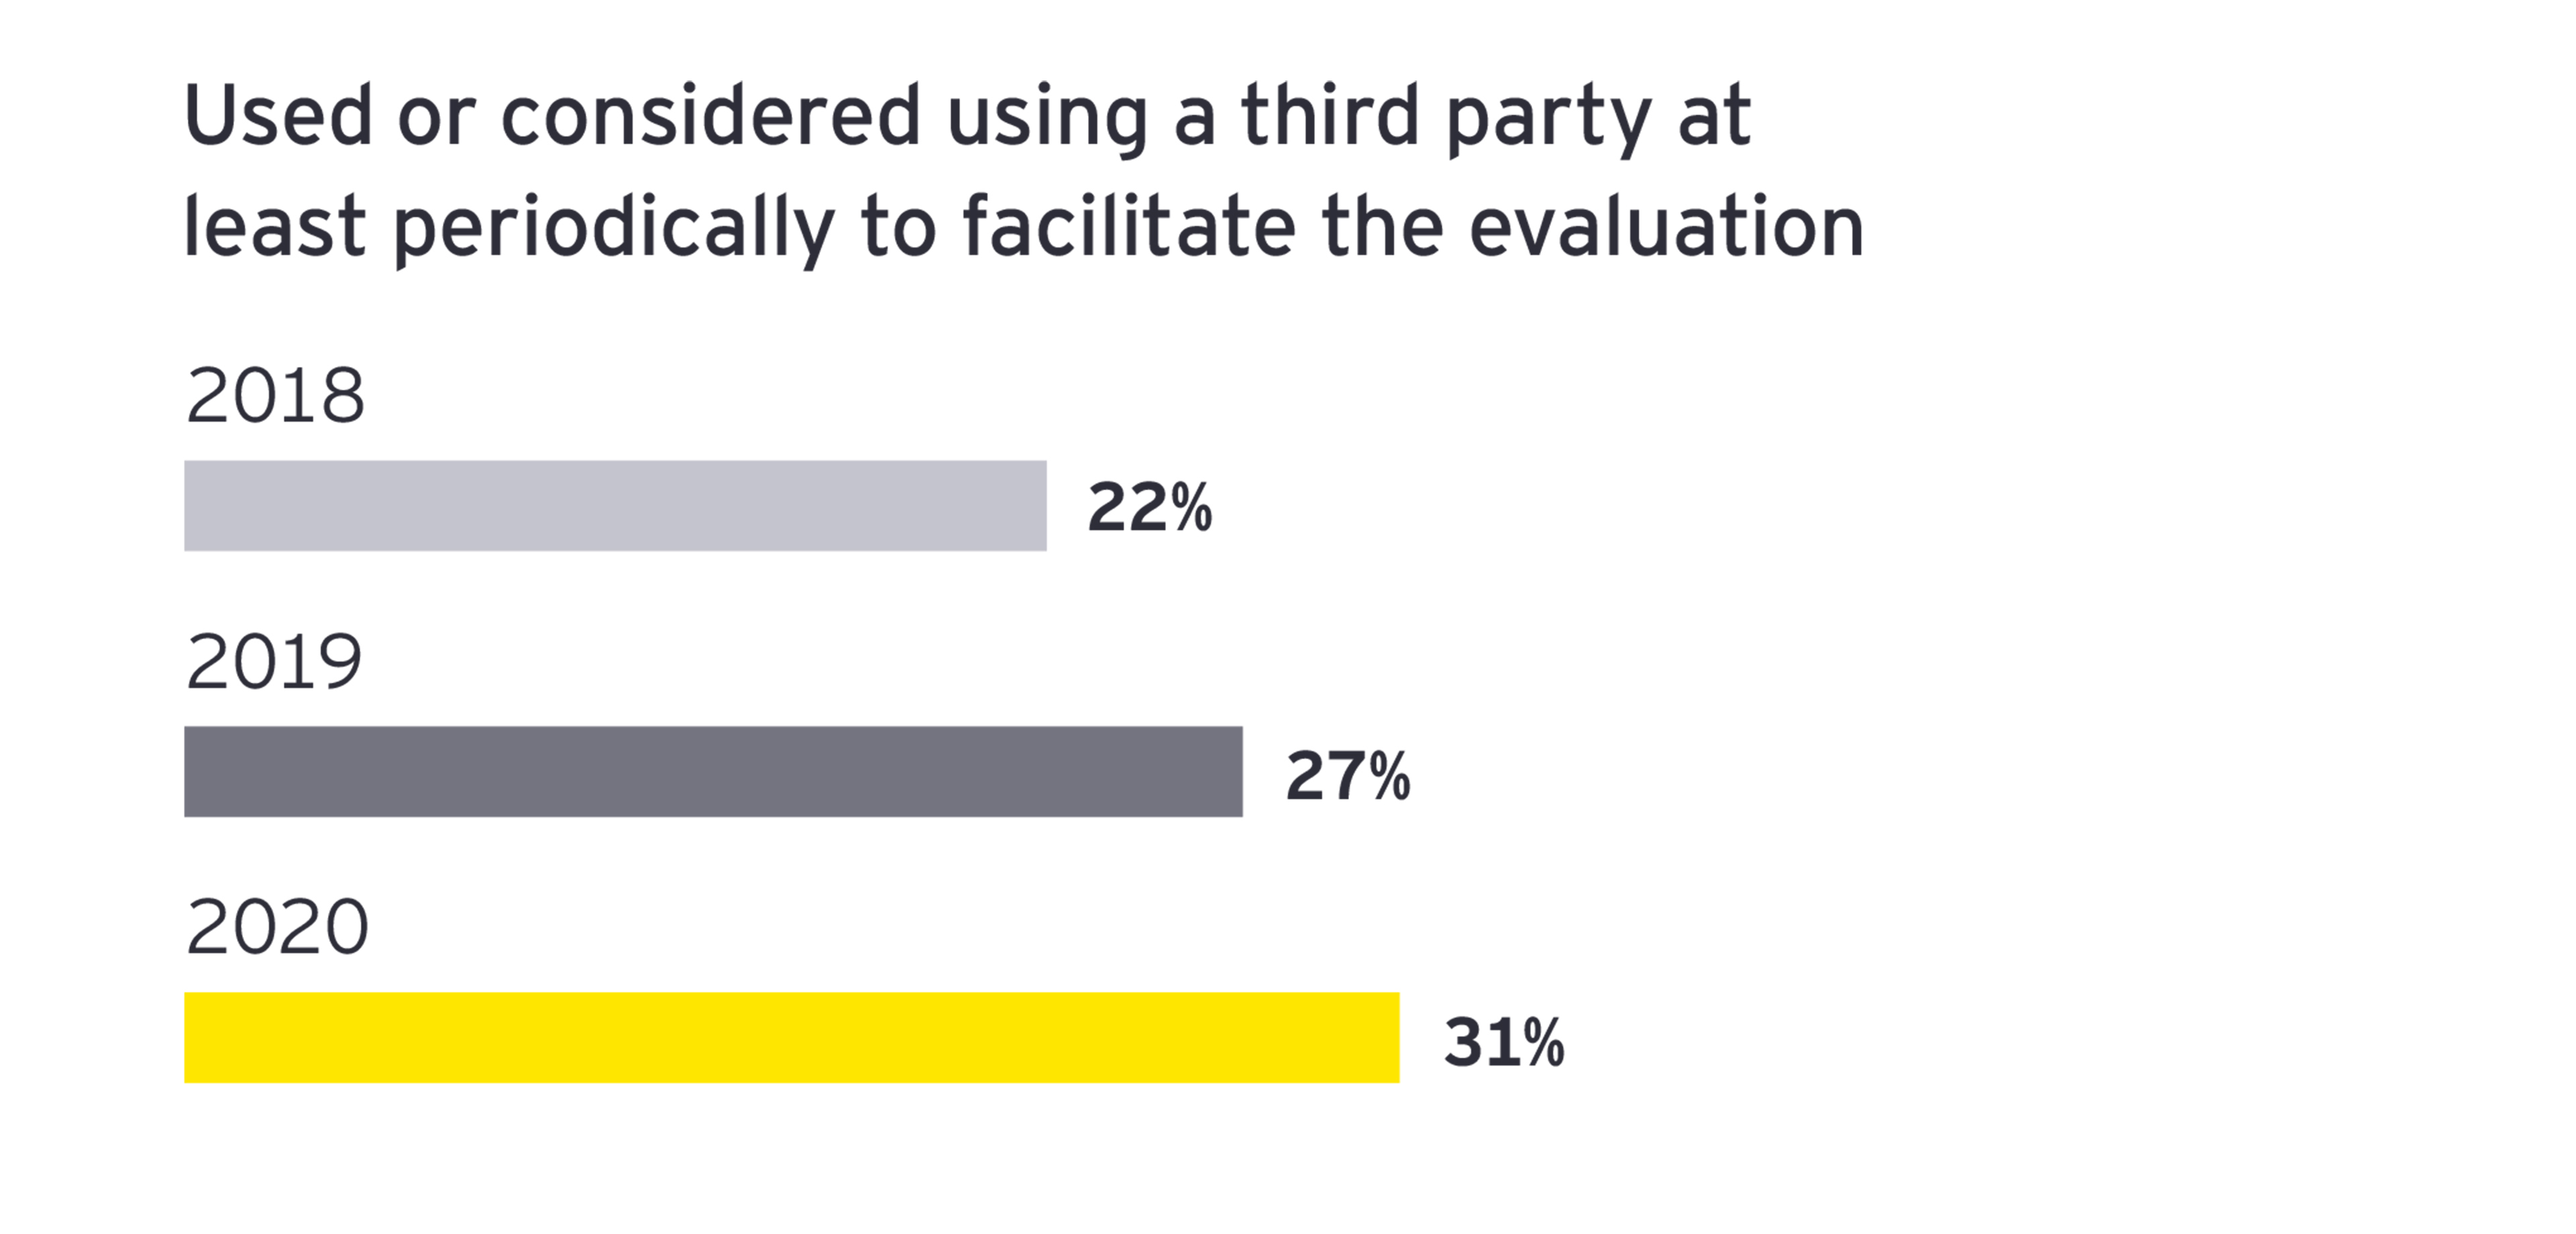 EY - Considered using a third party